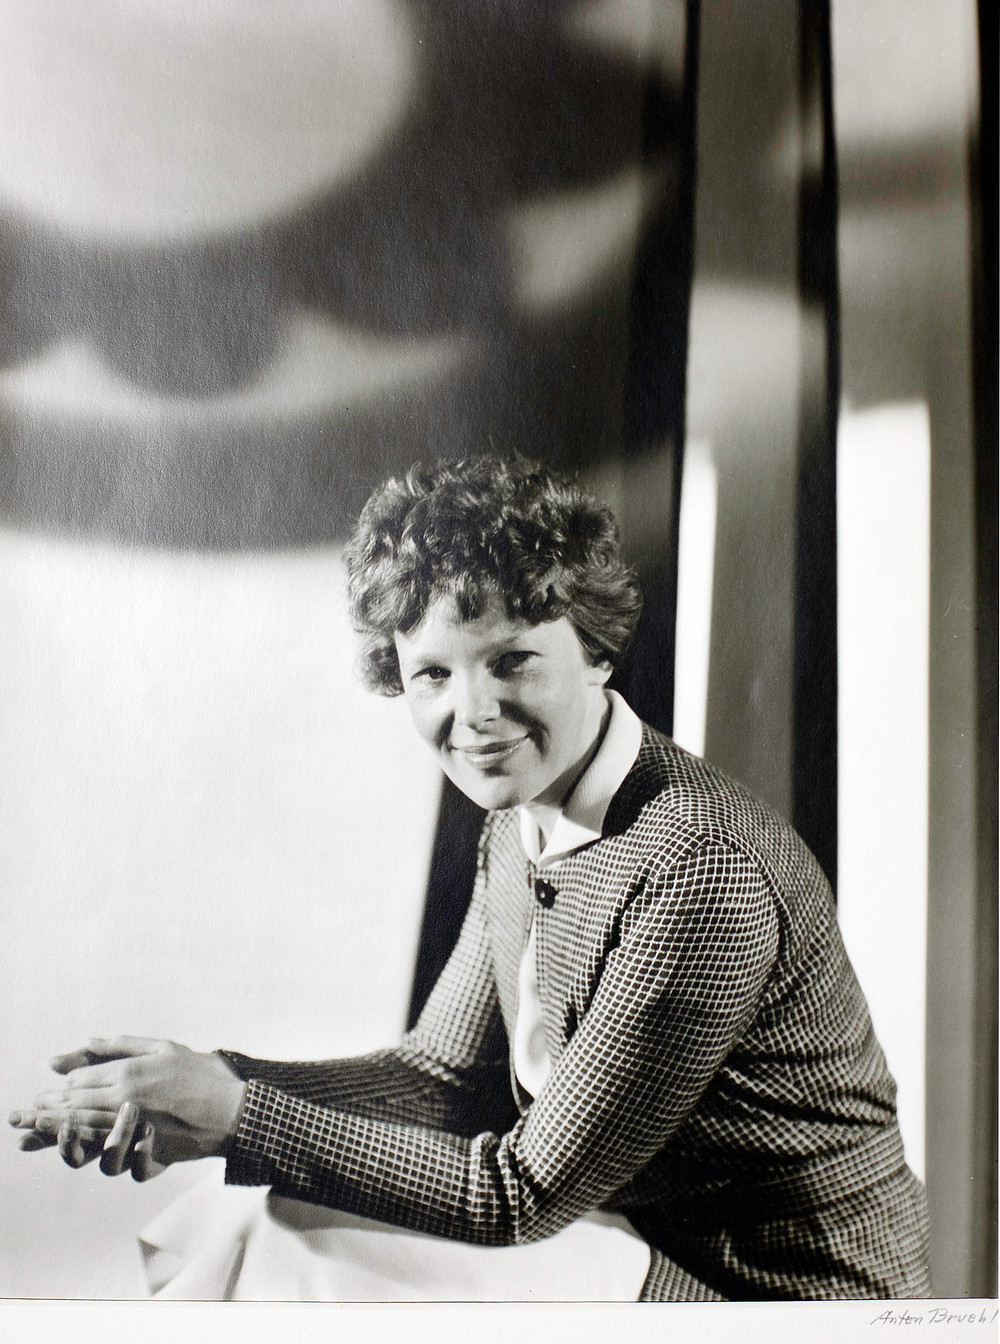 Larry loved then collected this rare portrait of Amelia Earhart in fashionable dress. Larry and his wife Pam later donated this artwork to a fund raising effort used to commission a new classical music composition, a concerto for tuba and orchestra.